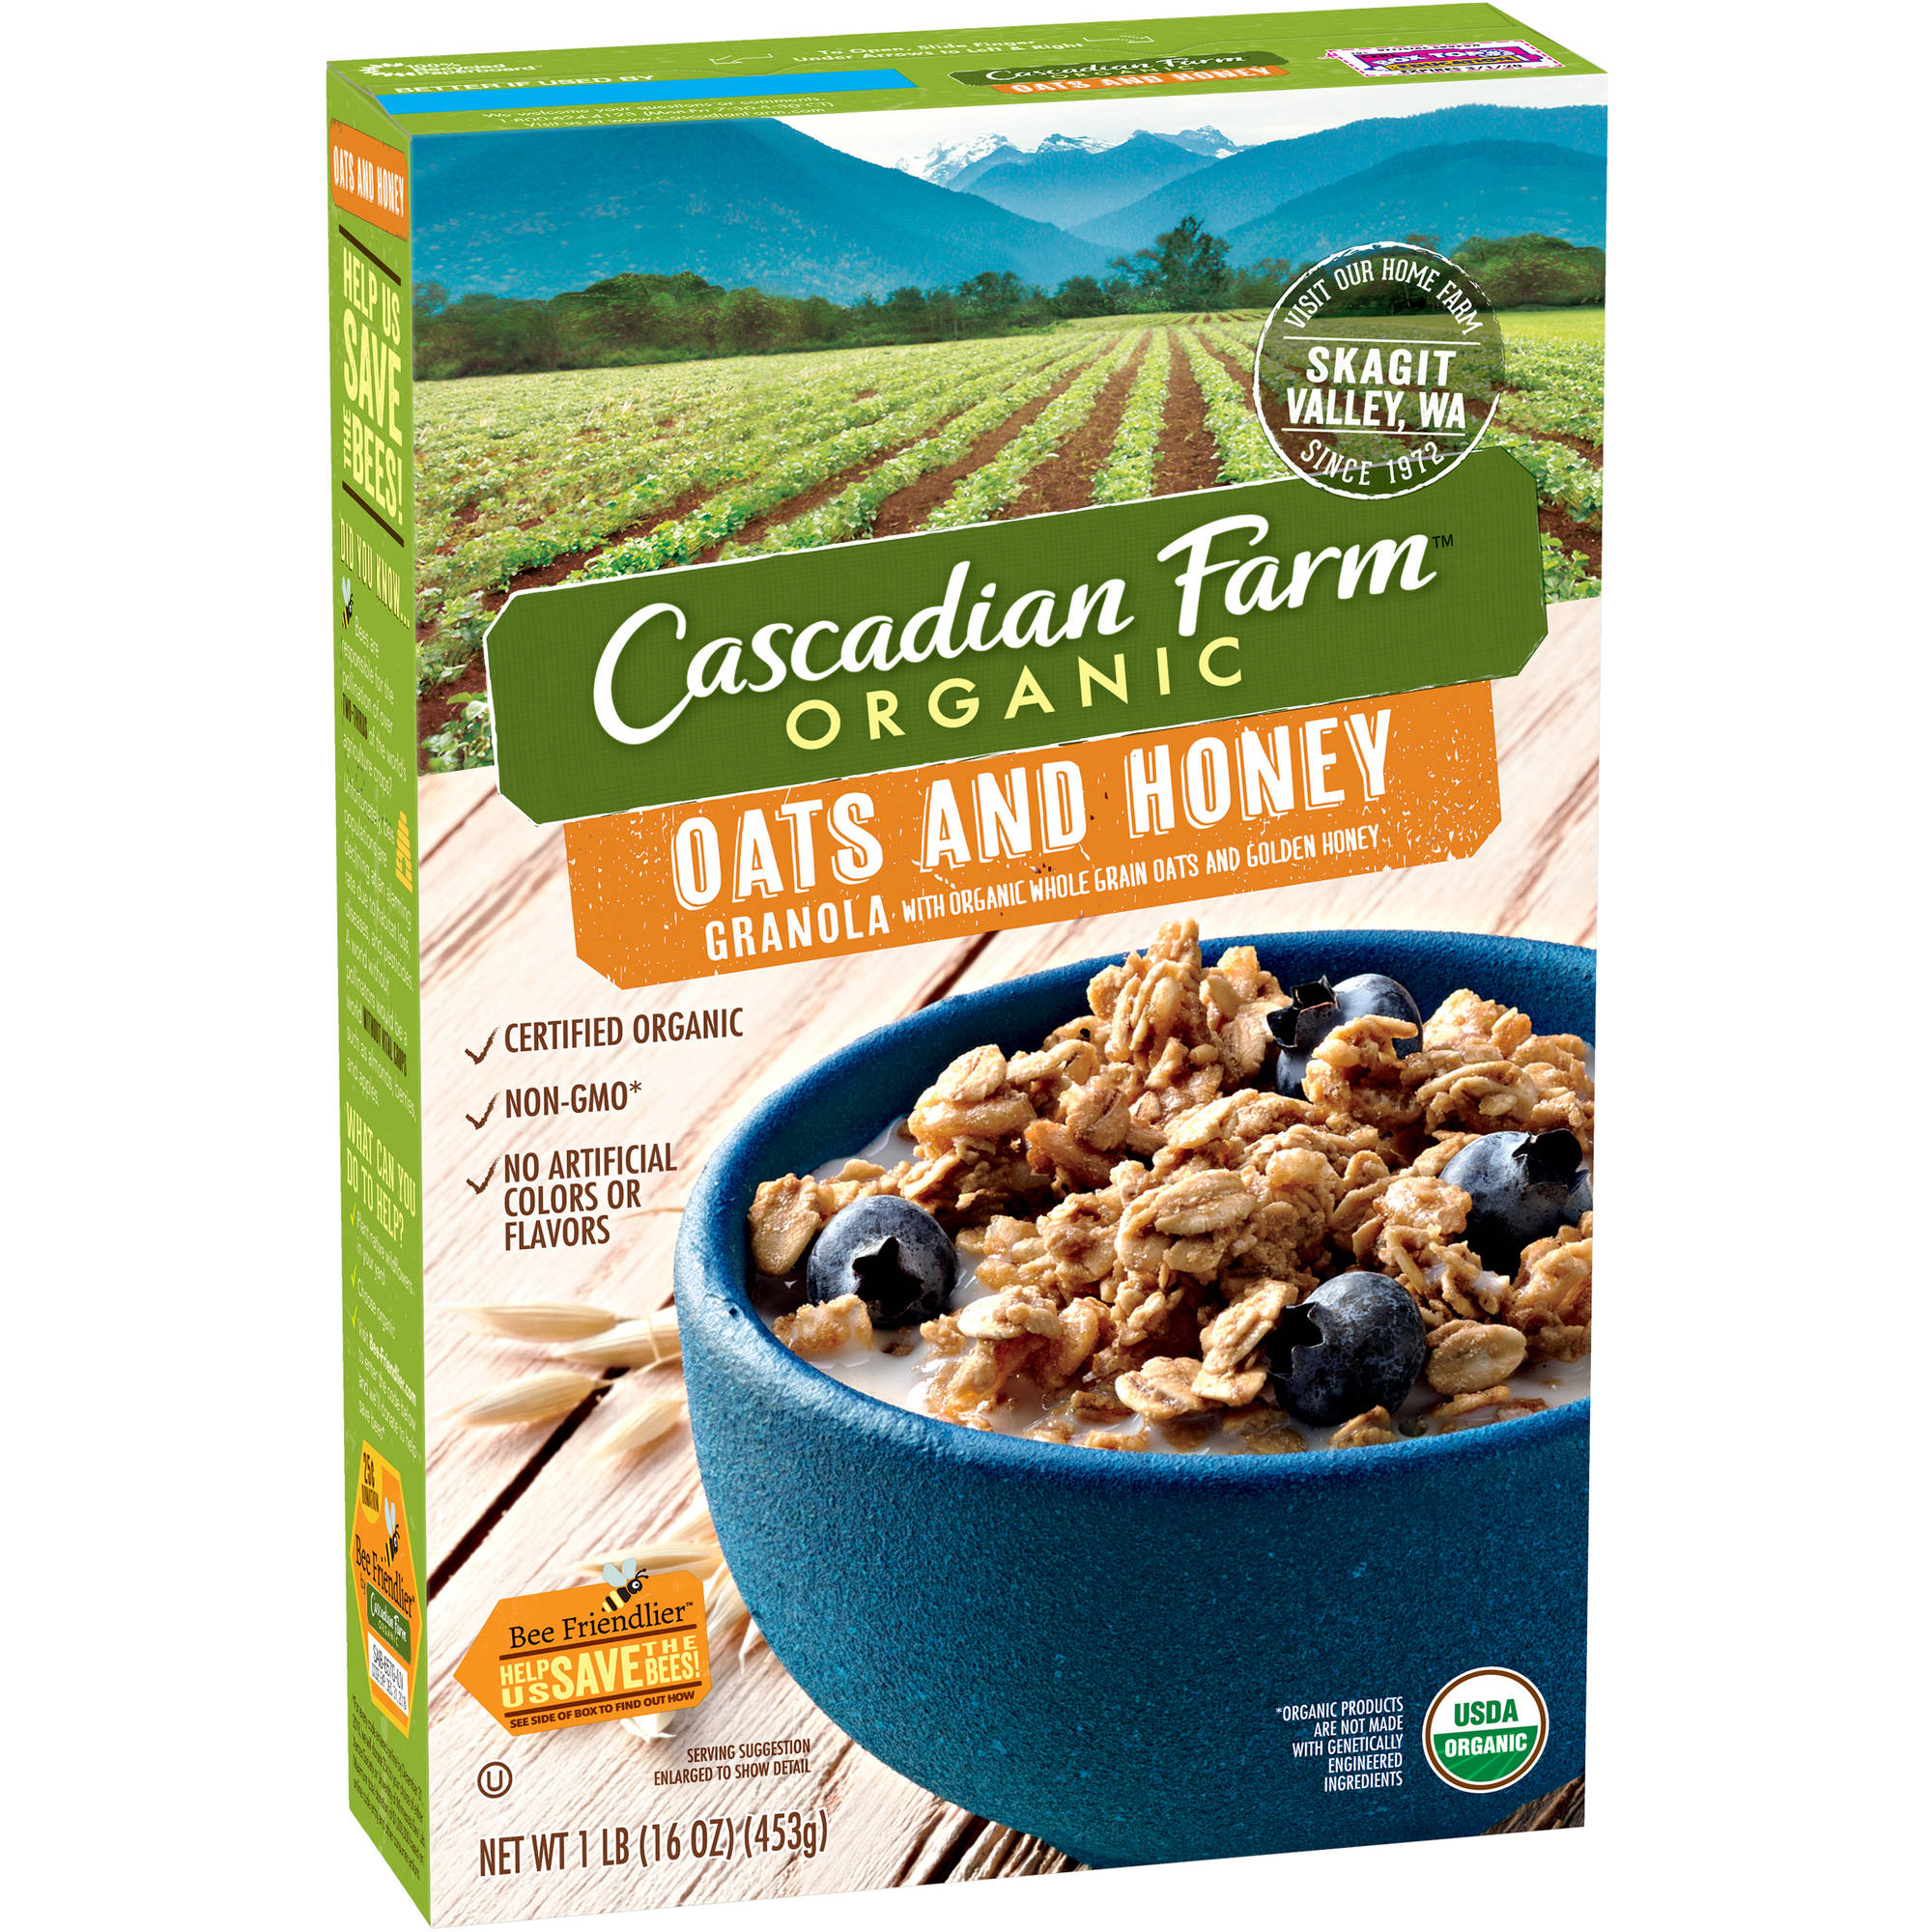 Cascadian Farm Organic Oats and Honey Granola, 16 oz